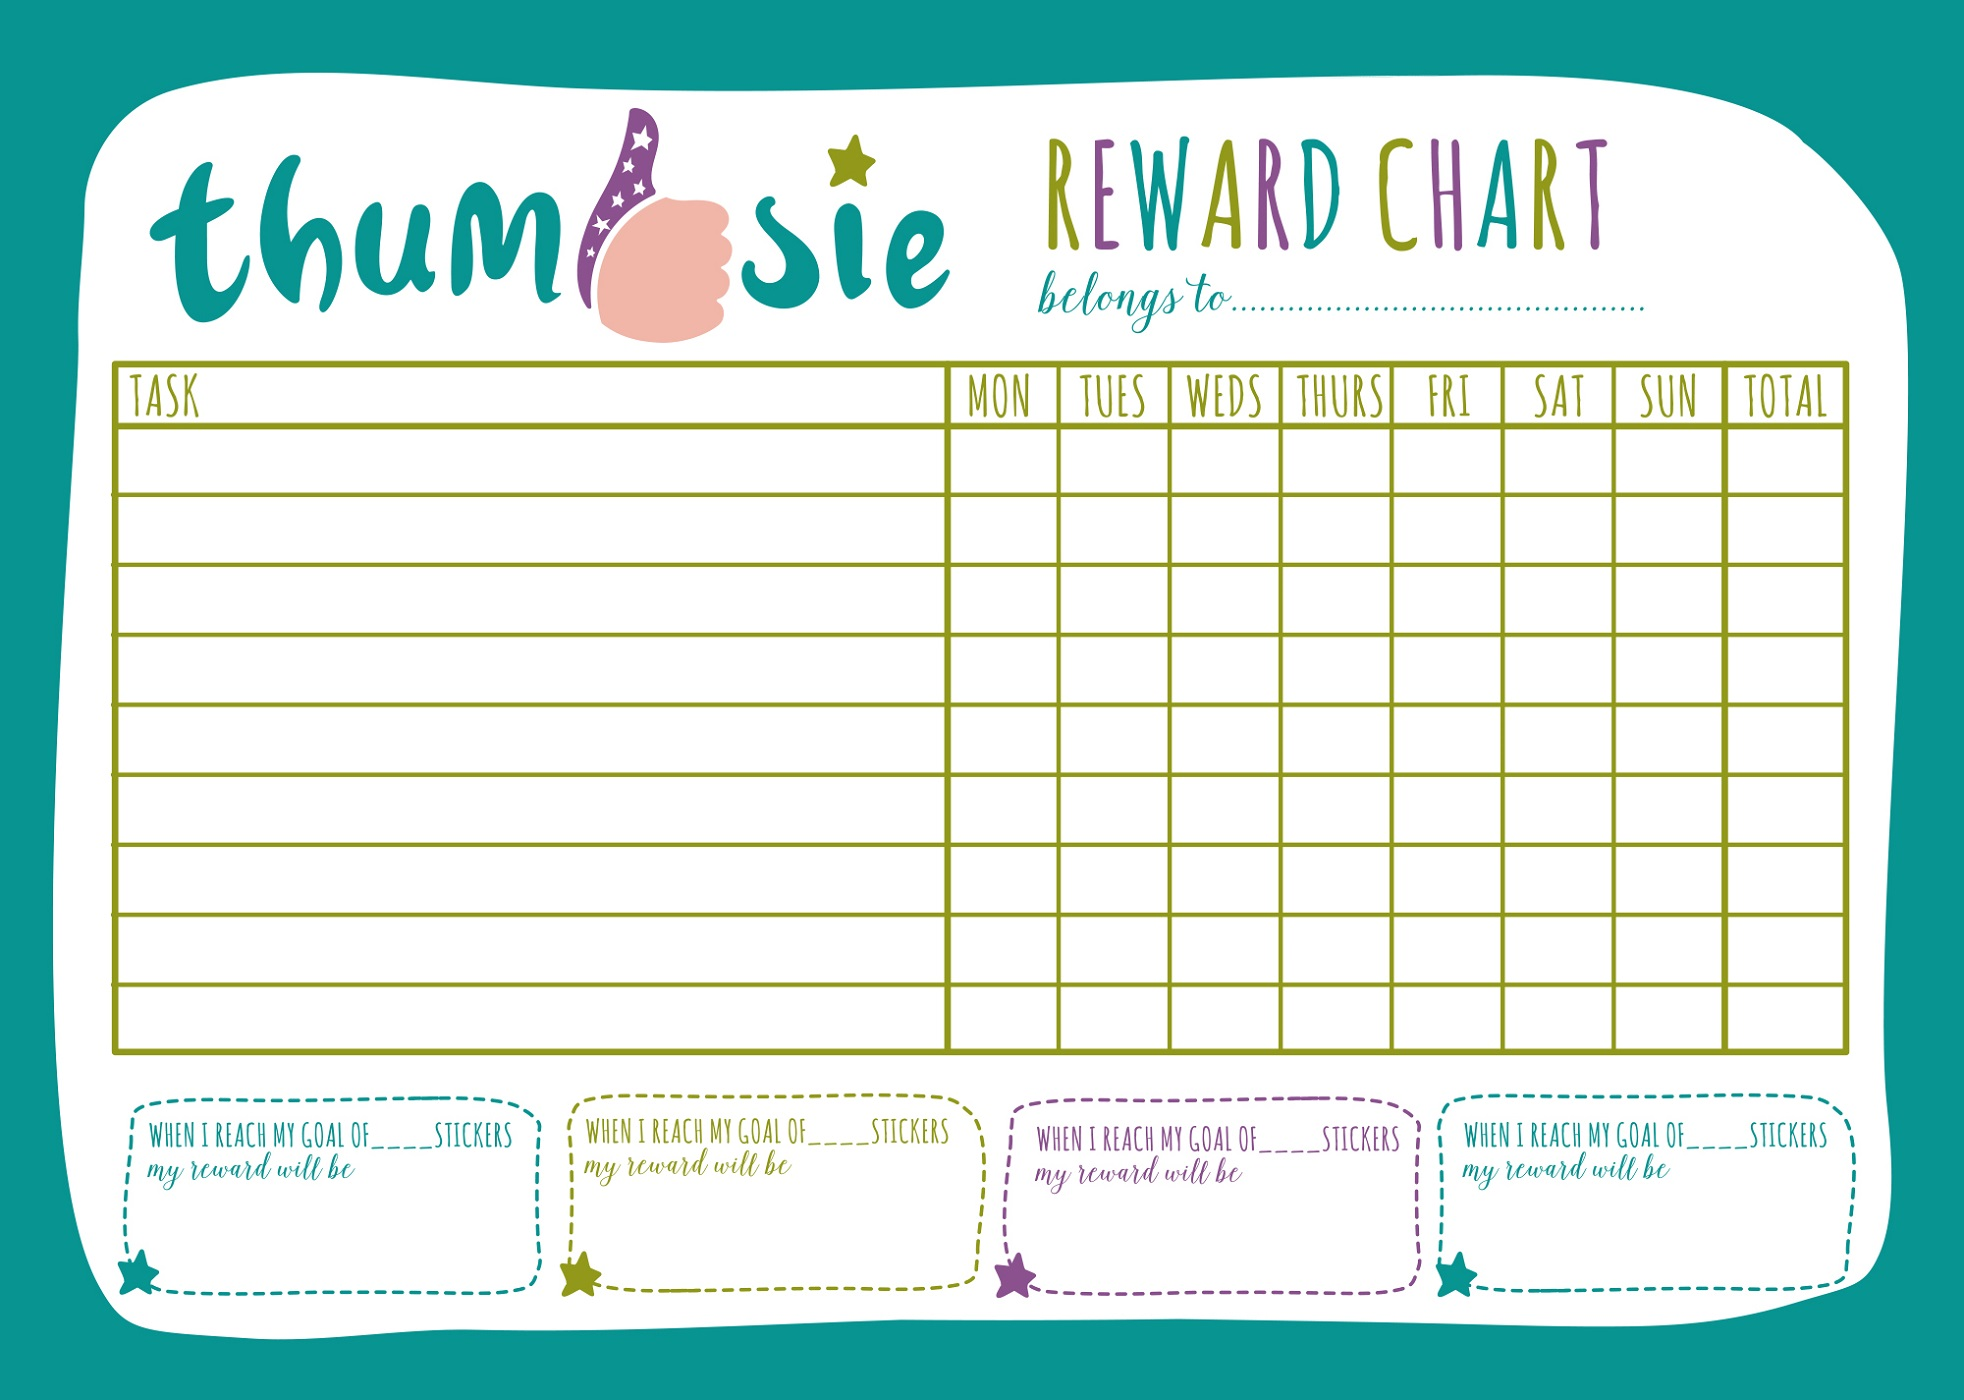 thumbsie_rewardchart_OL